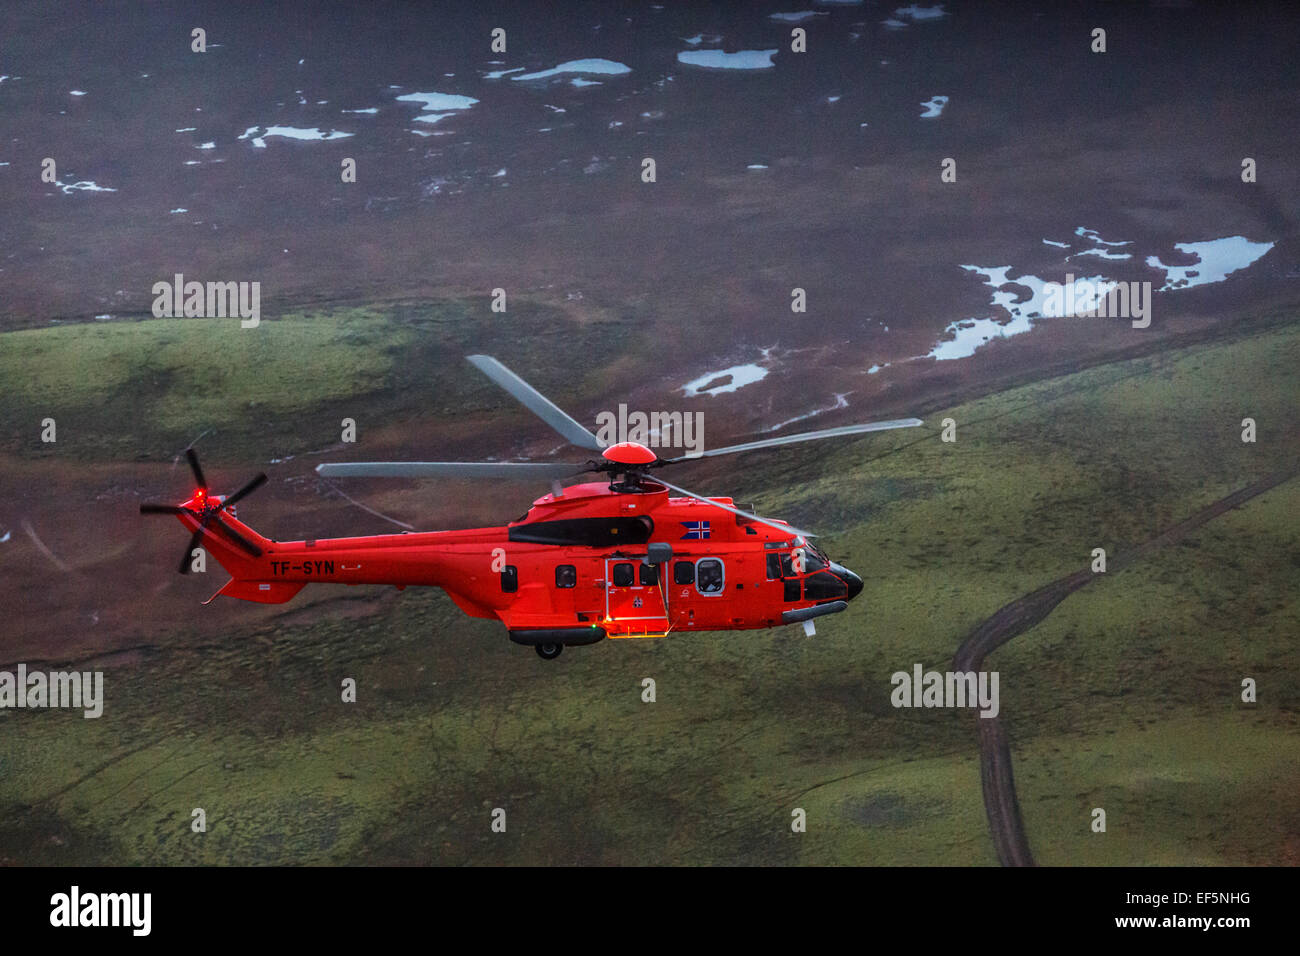 Aerial view-TF-SYN, Search and Rescue Helicopter flying by Gullfoss Waterfalls, Iceland. - Stock Image